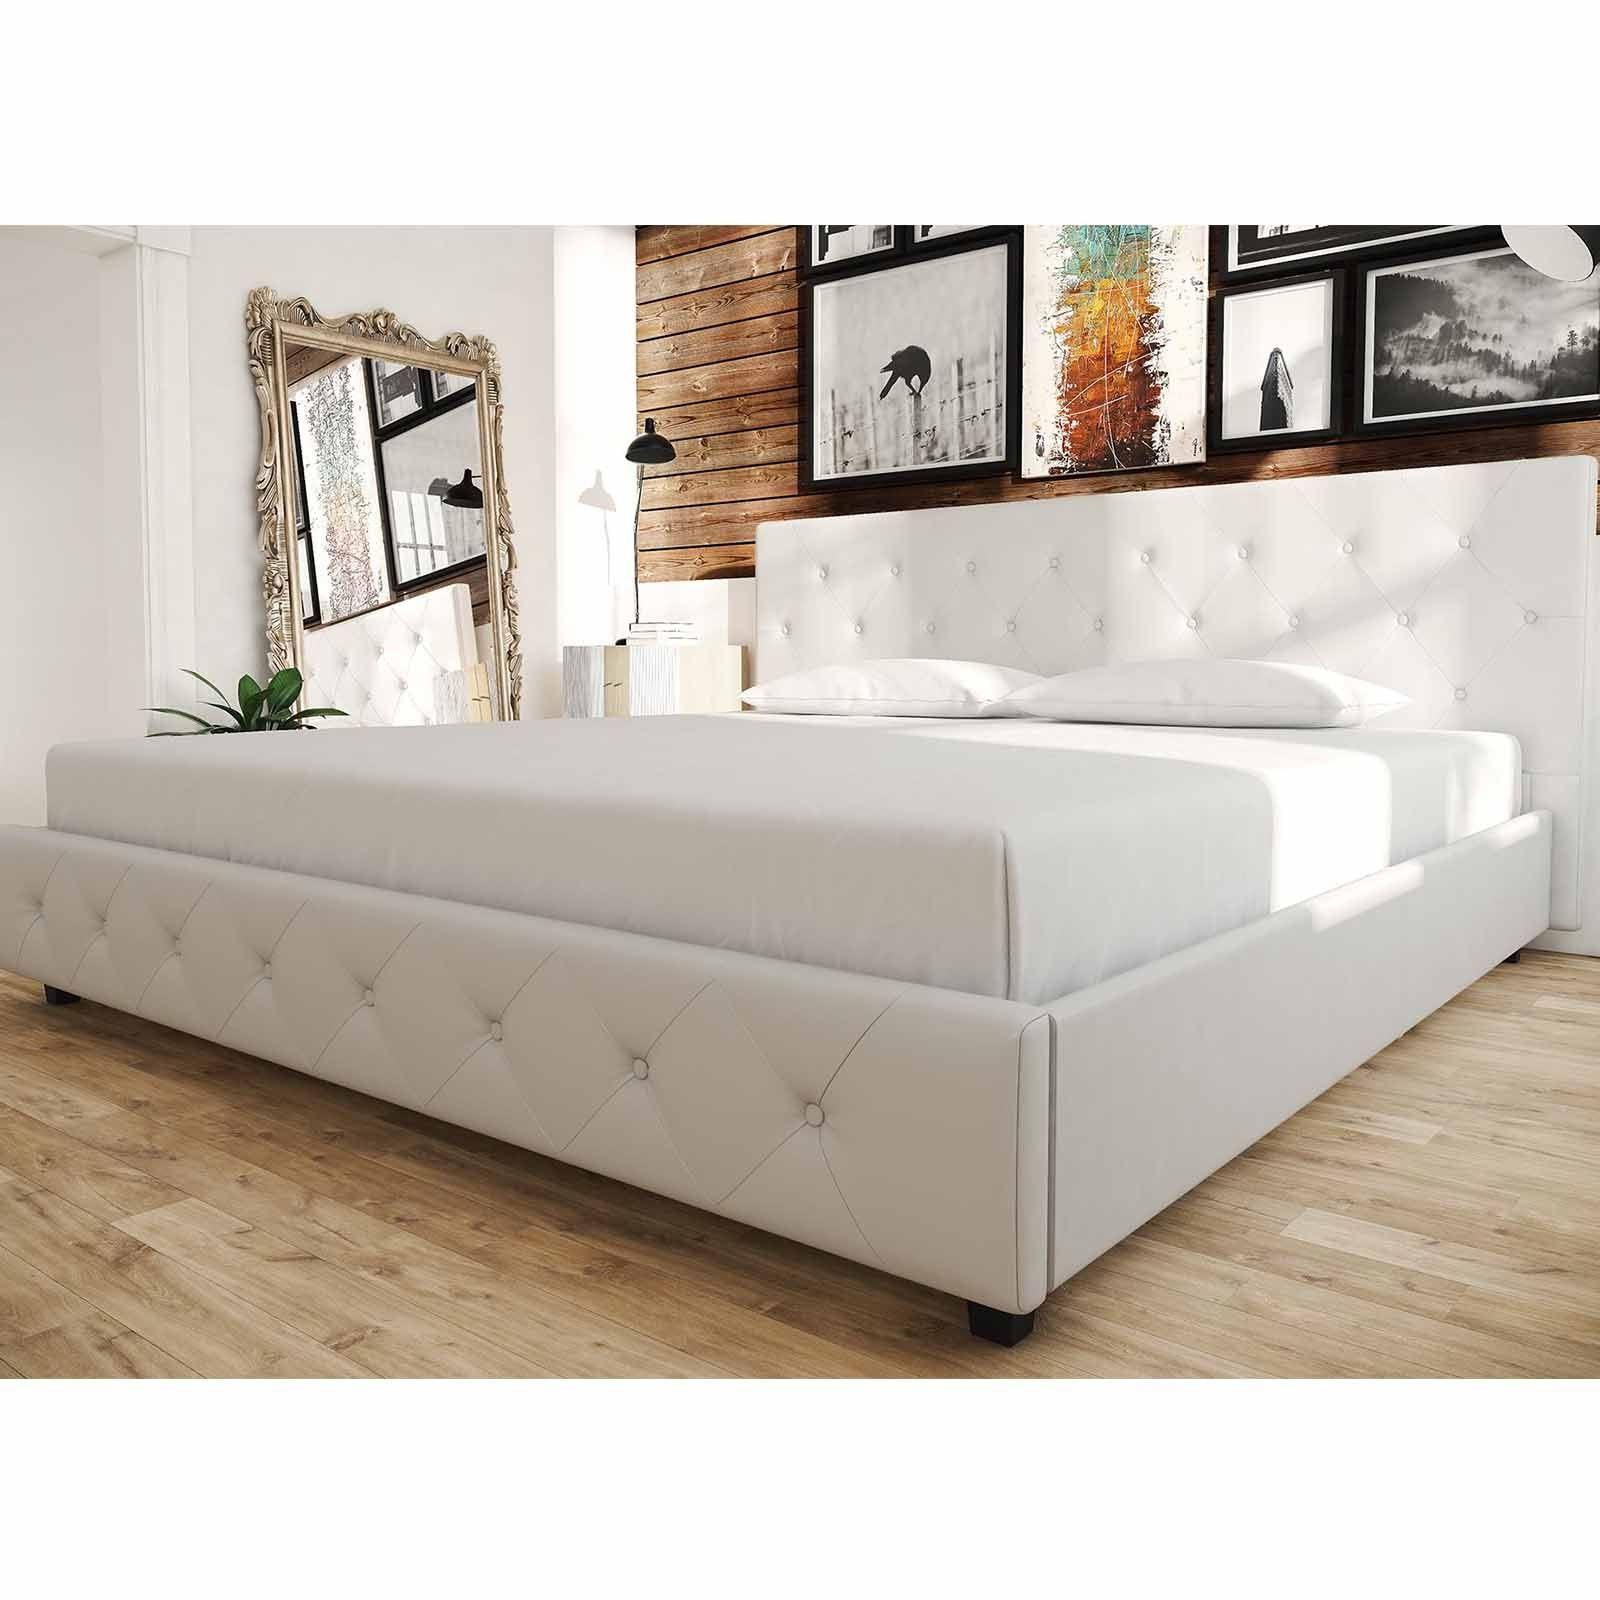 Upholstered Bed Frame Twin Queen King Tufted Headboard